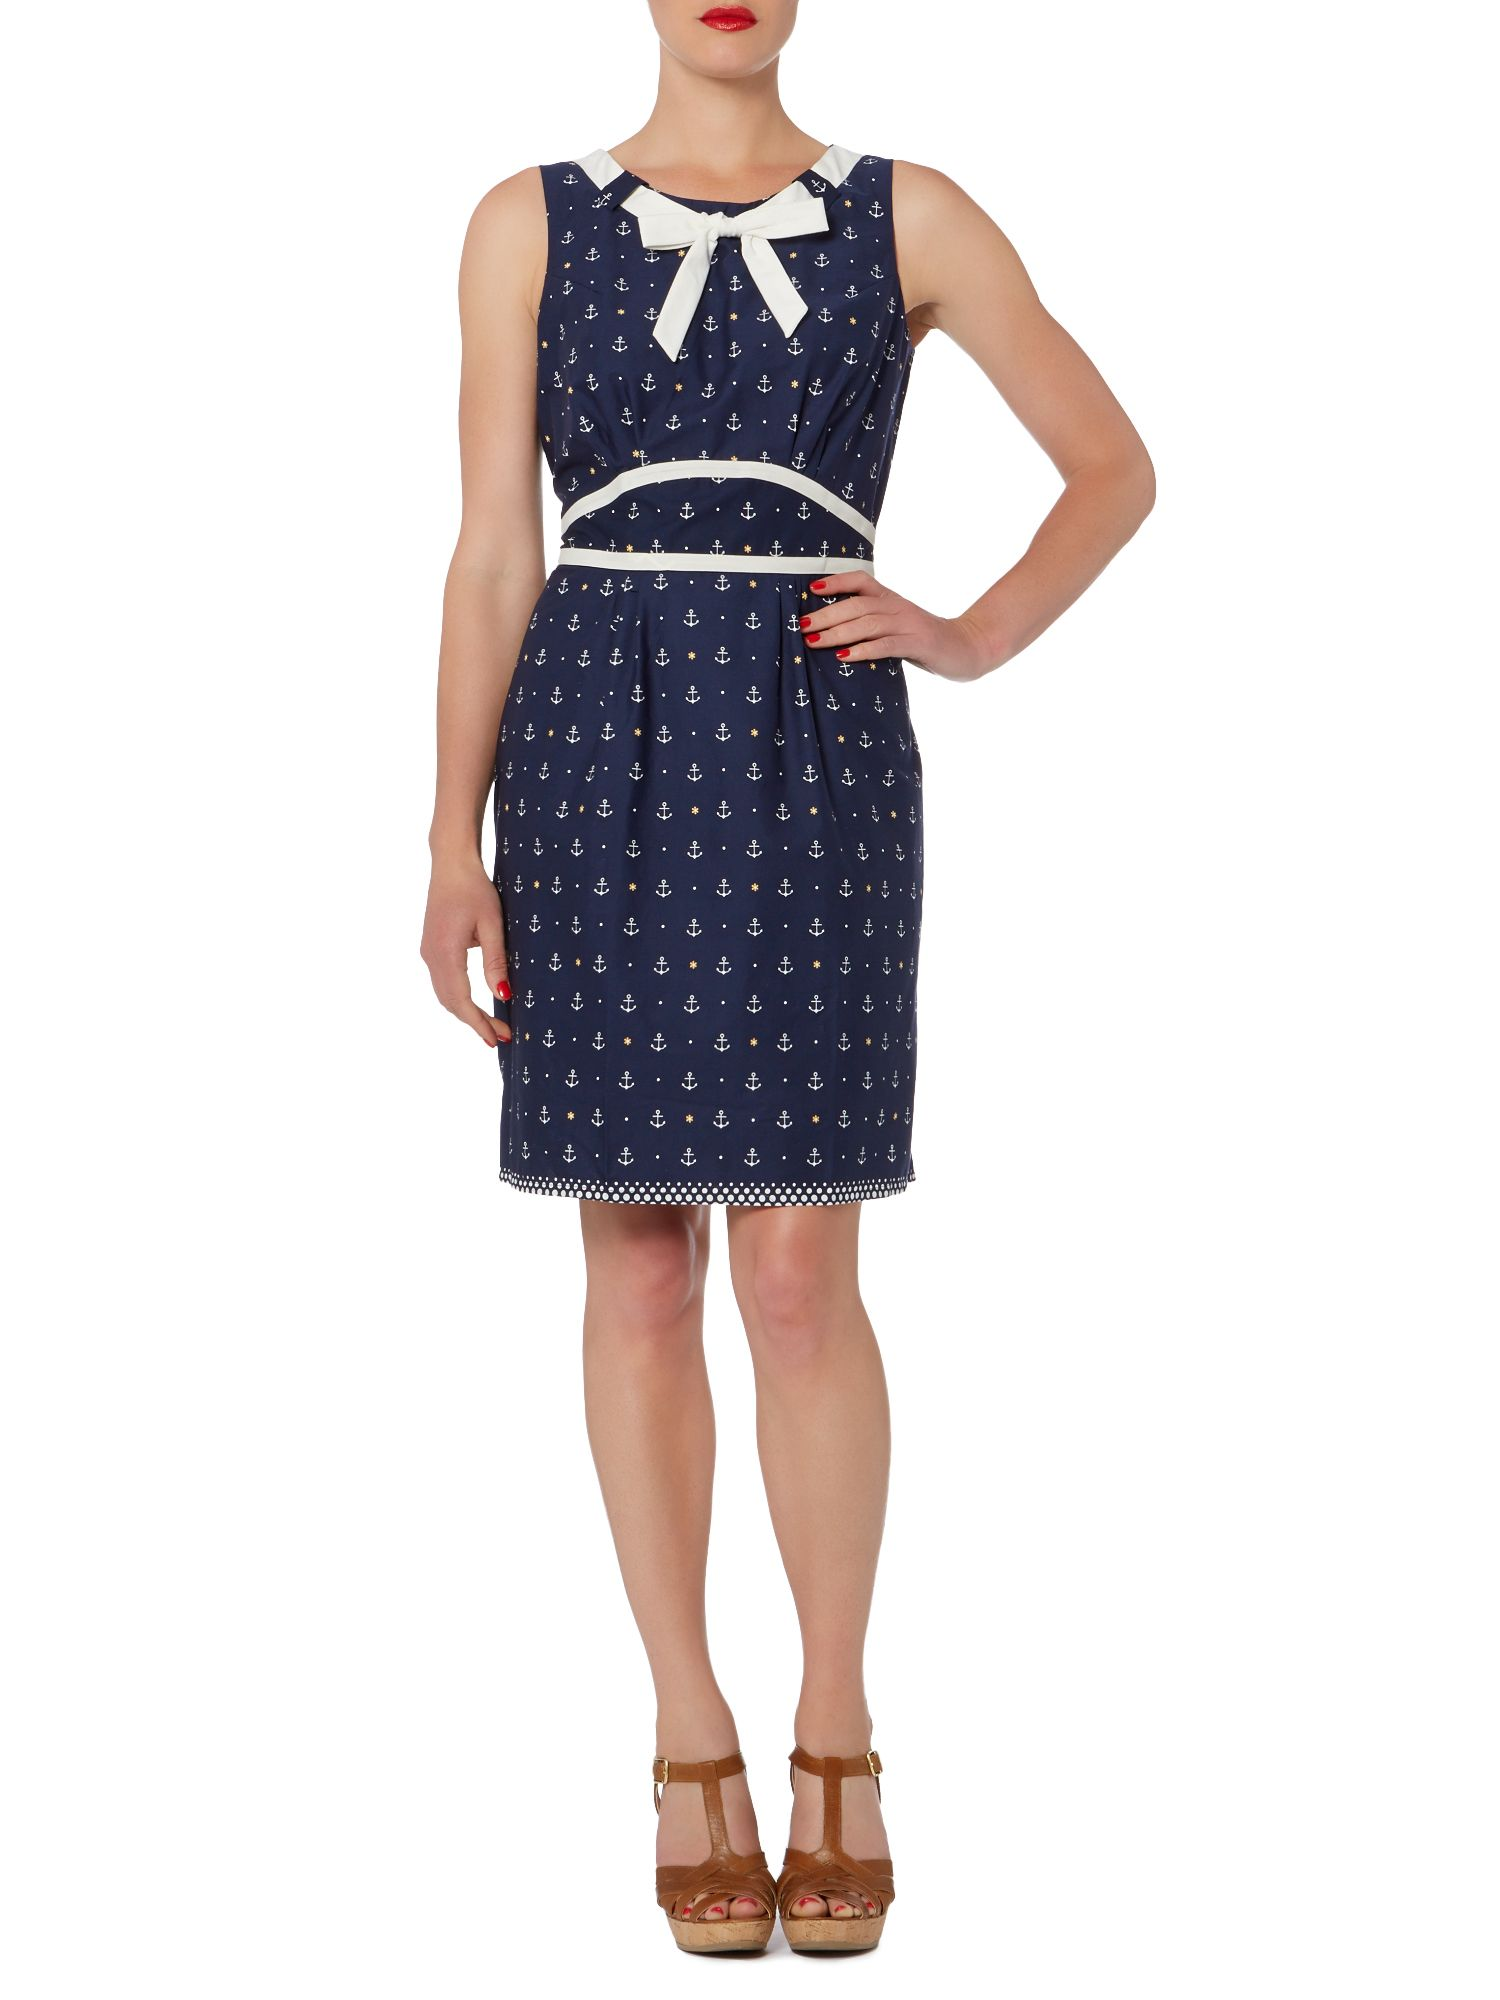 Nautical dress with tie neck